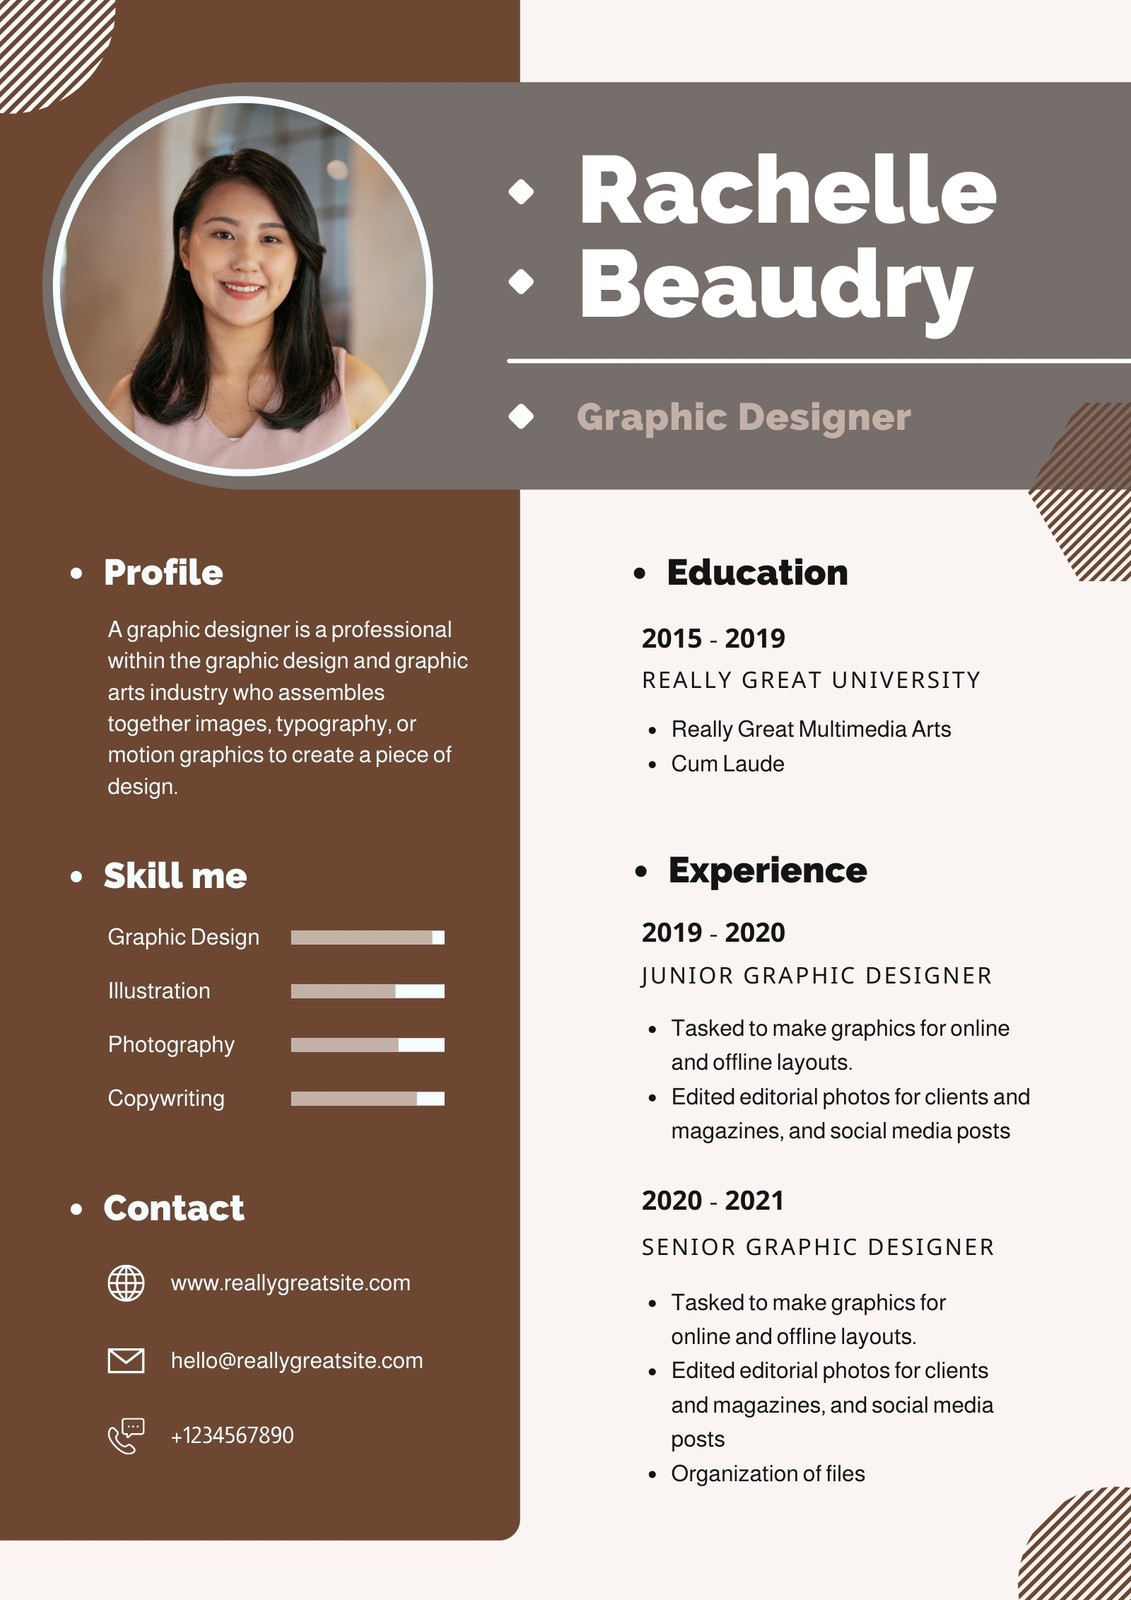 Find out how to become a graphic designer in this article from howstuffworks. Qfwcch7d4 Daam